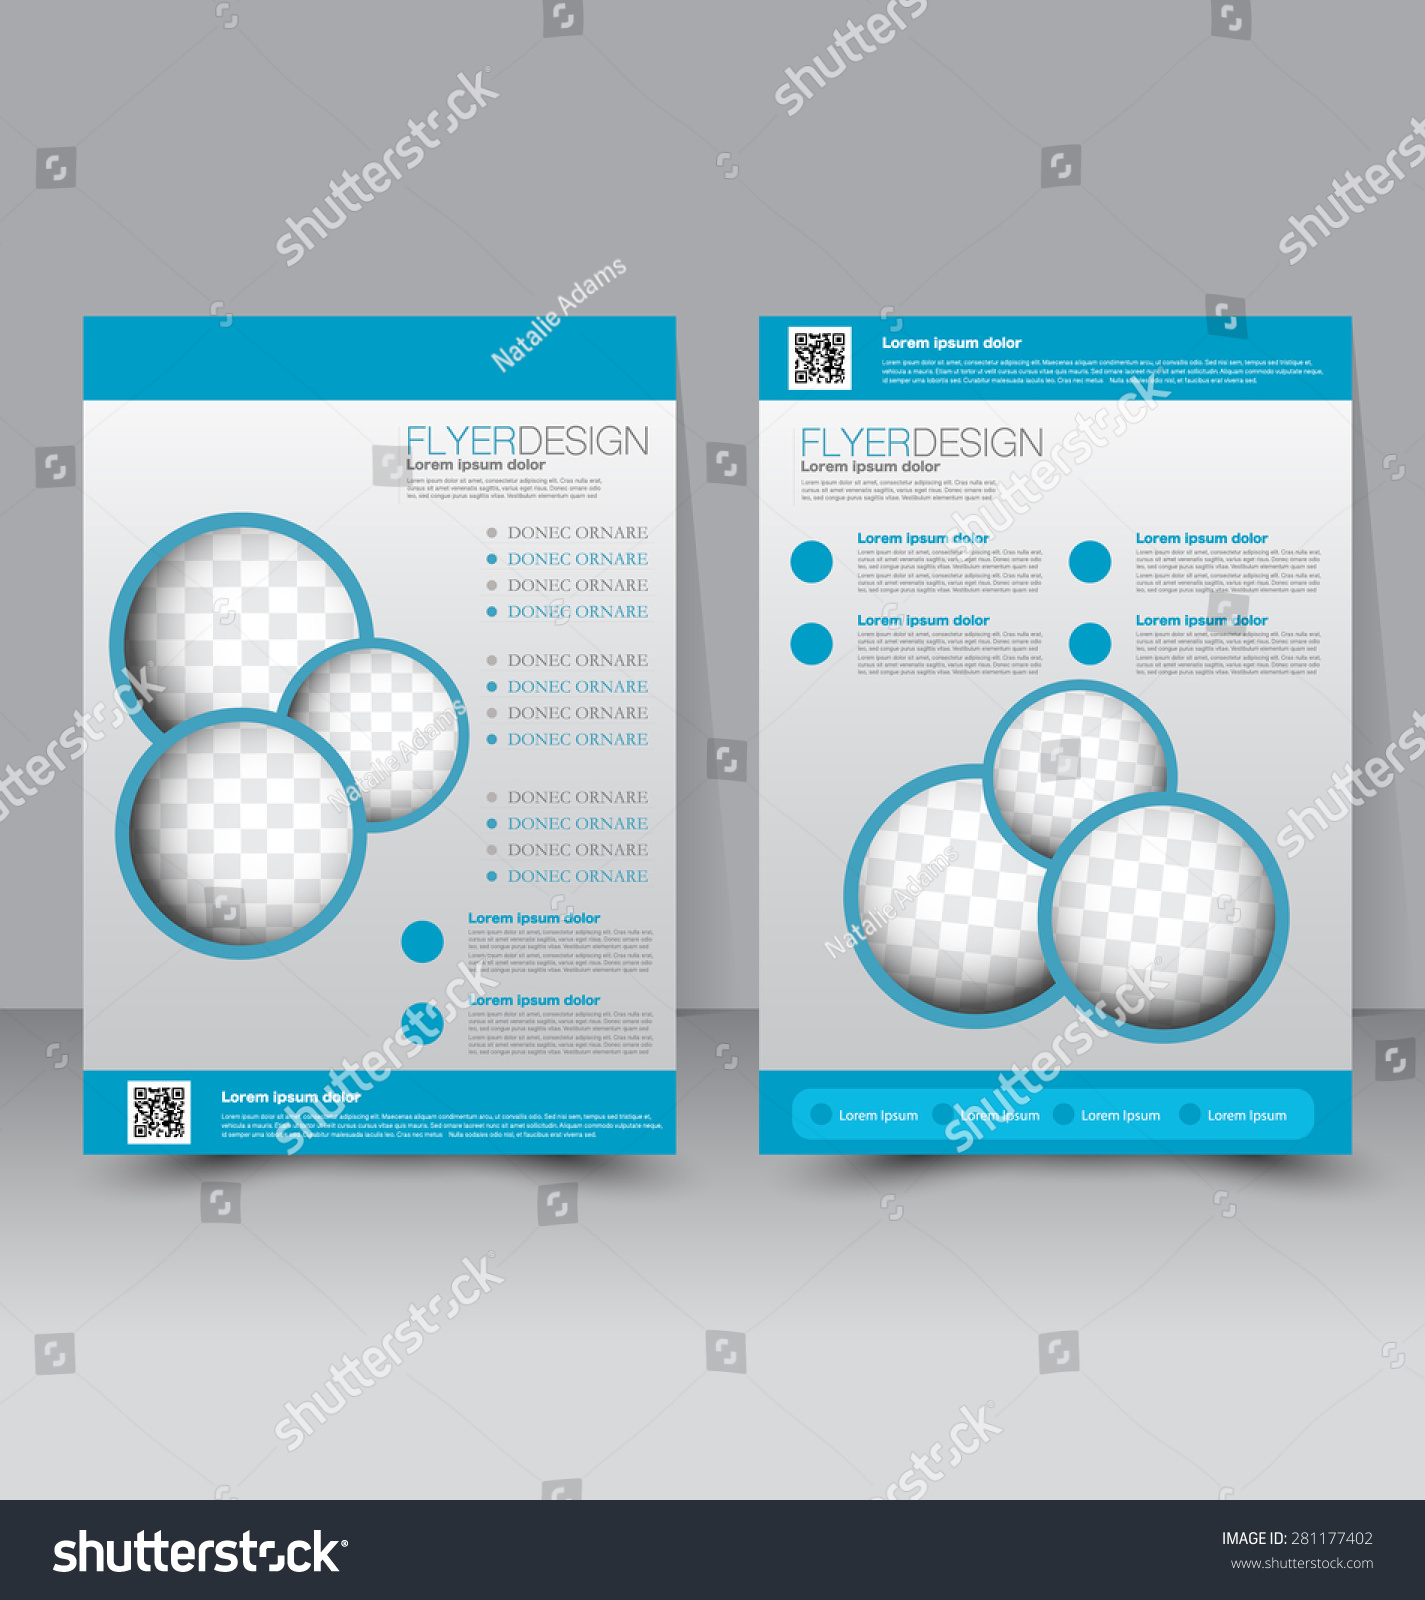 Flyer Template. Business Brochure. Editable A4 Poster For Design,  Education, Presentation,